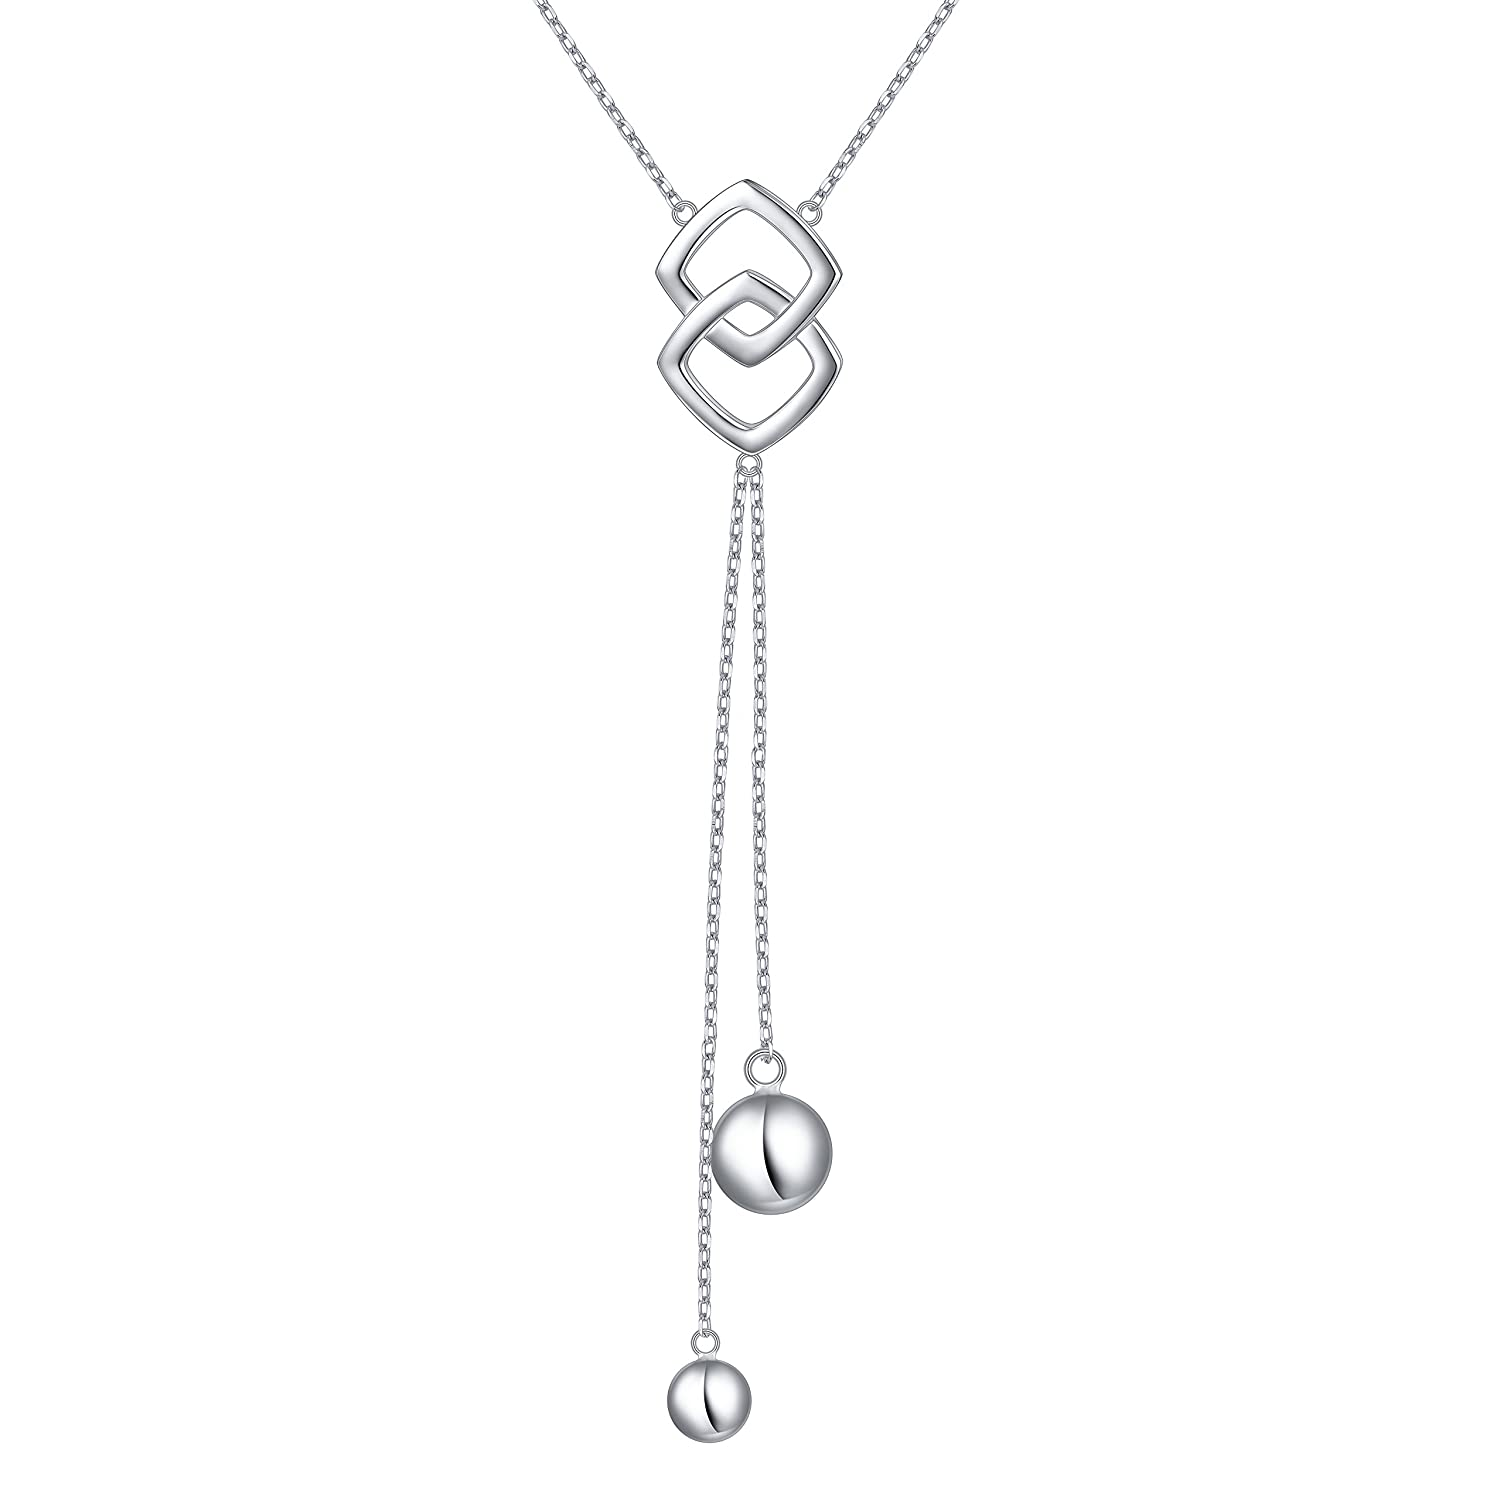 SILVER MOUNTAIN Long Necklace S925 Sterling Silver Tassel Round Ball Necklace for Women, 30